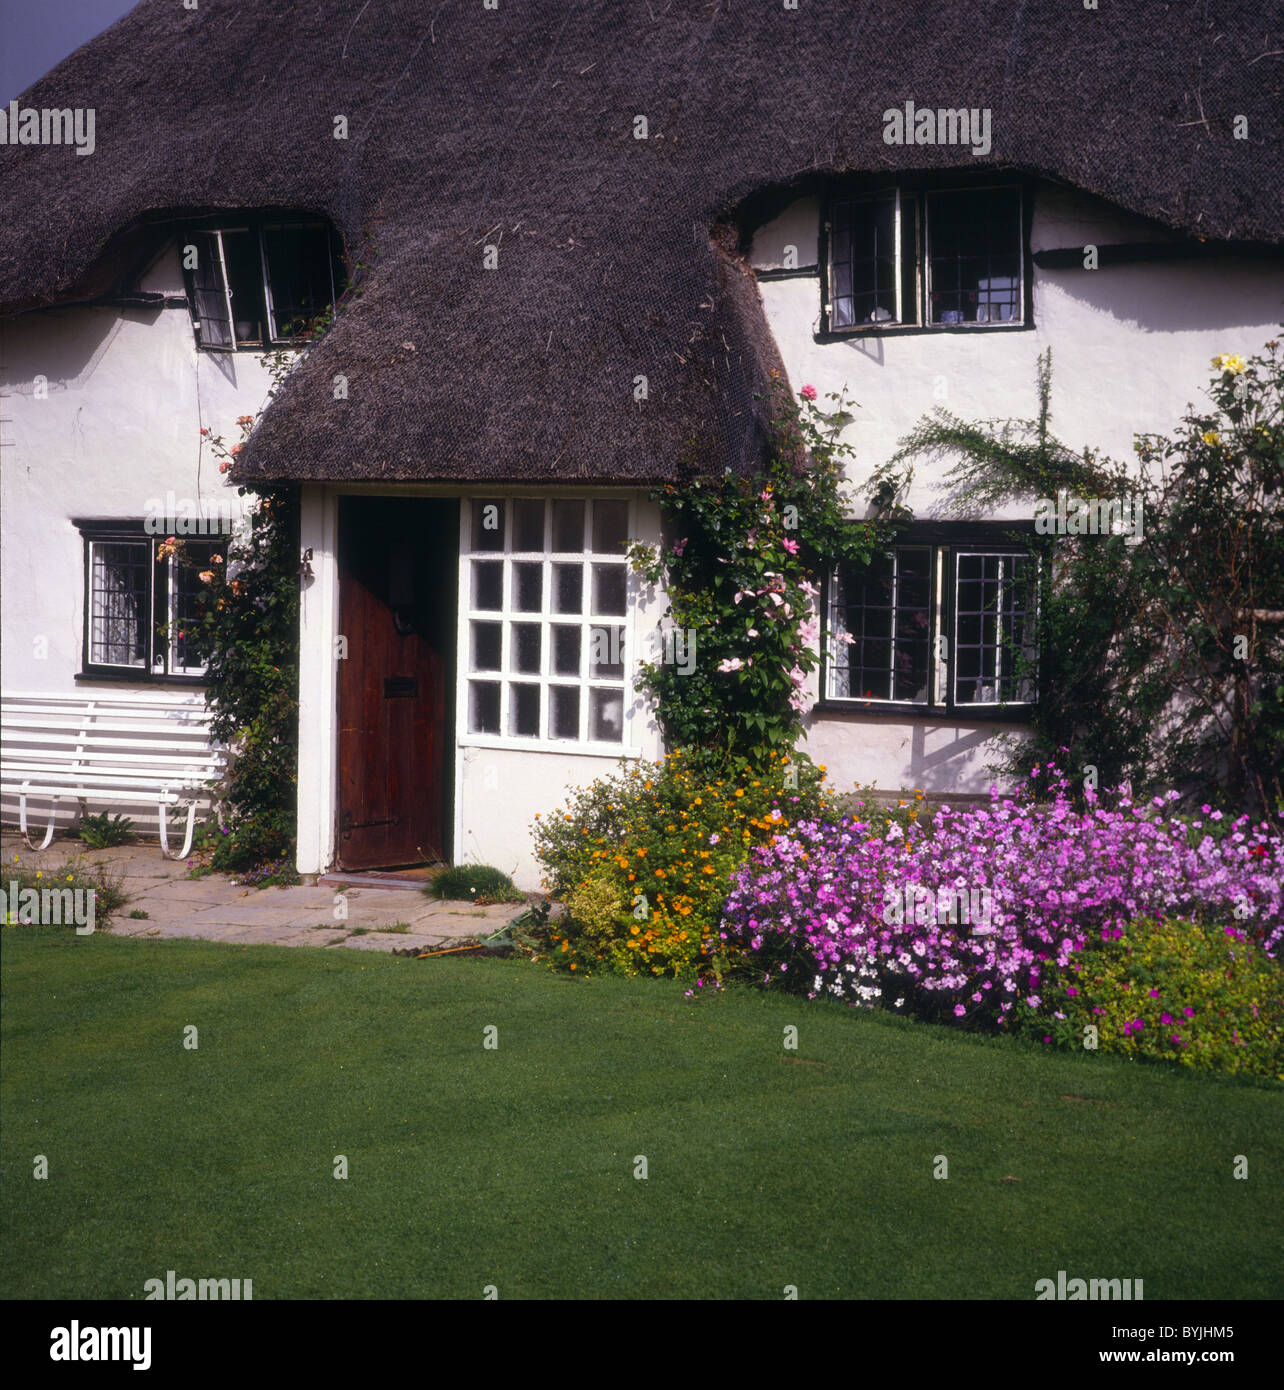 Country cottage garden, Wiltshire, England - Stock Image